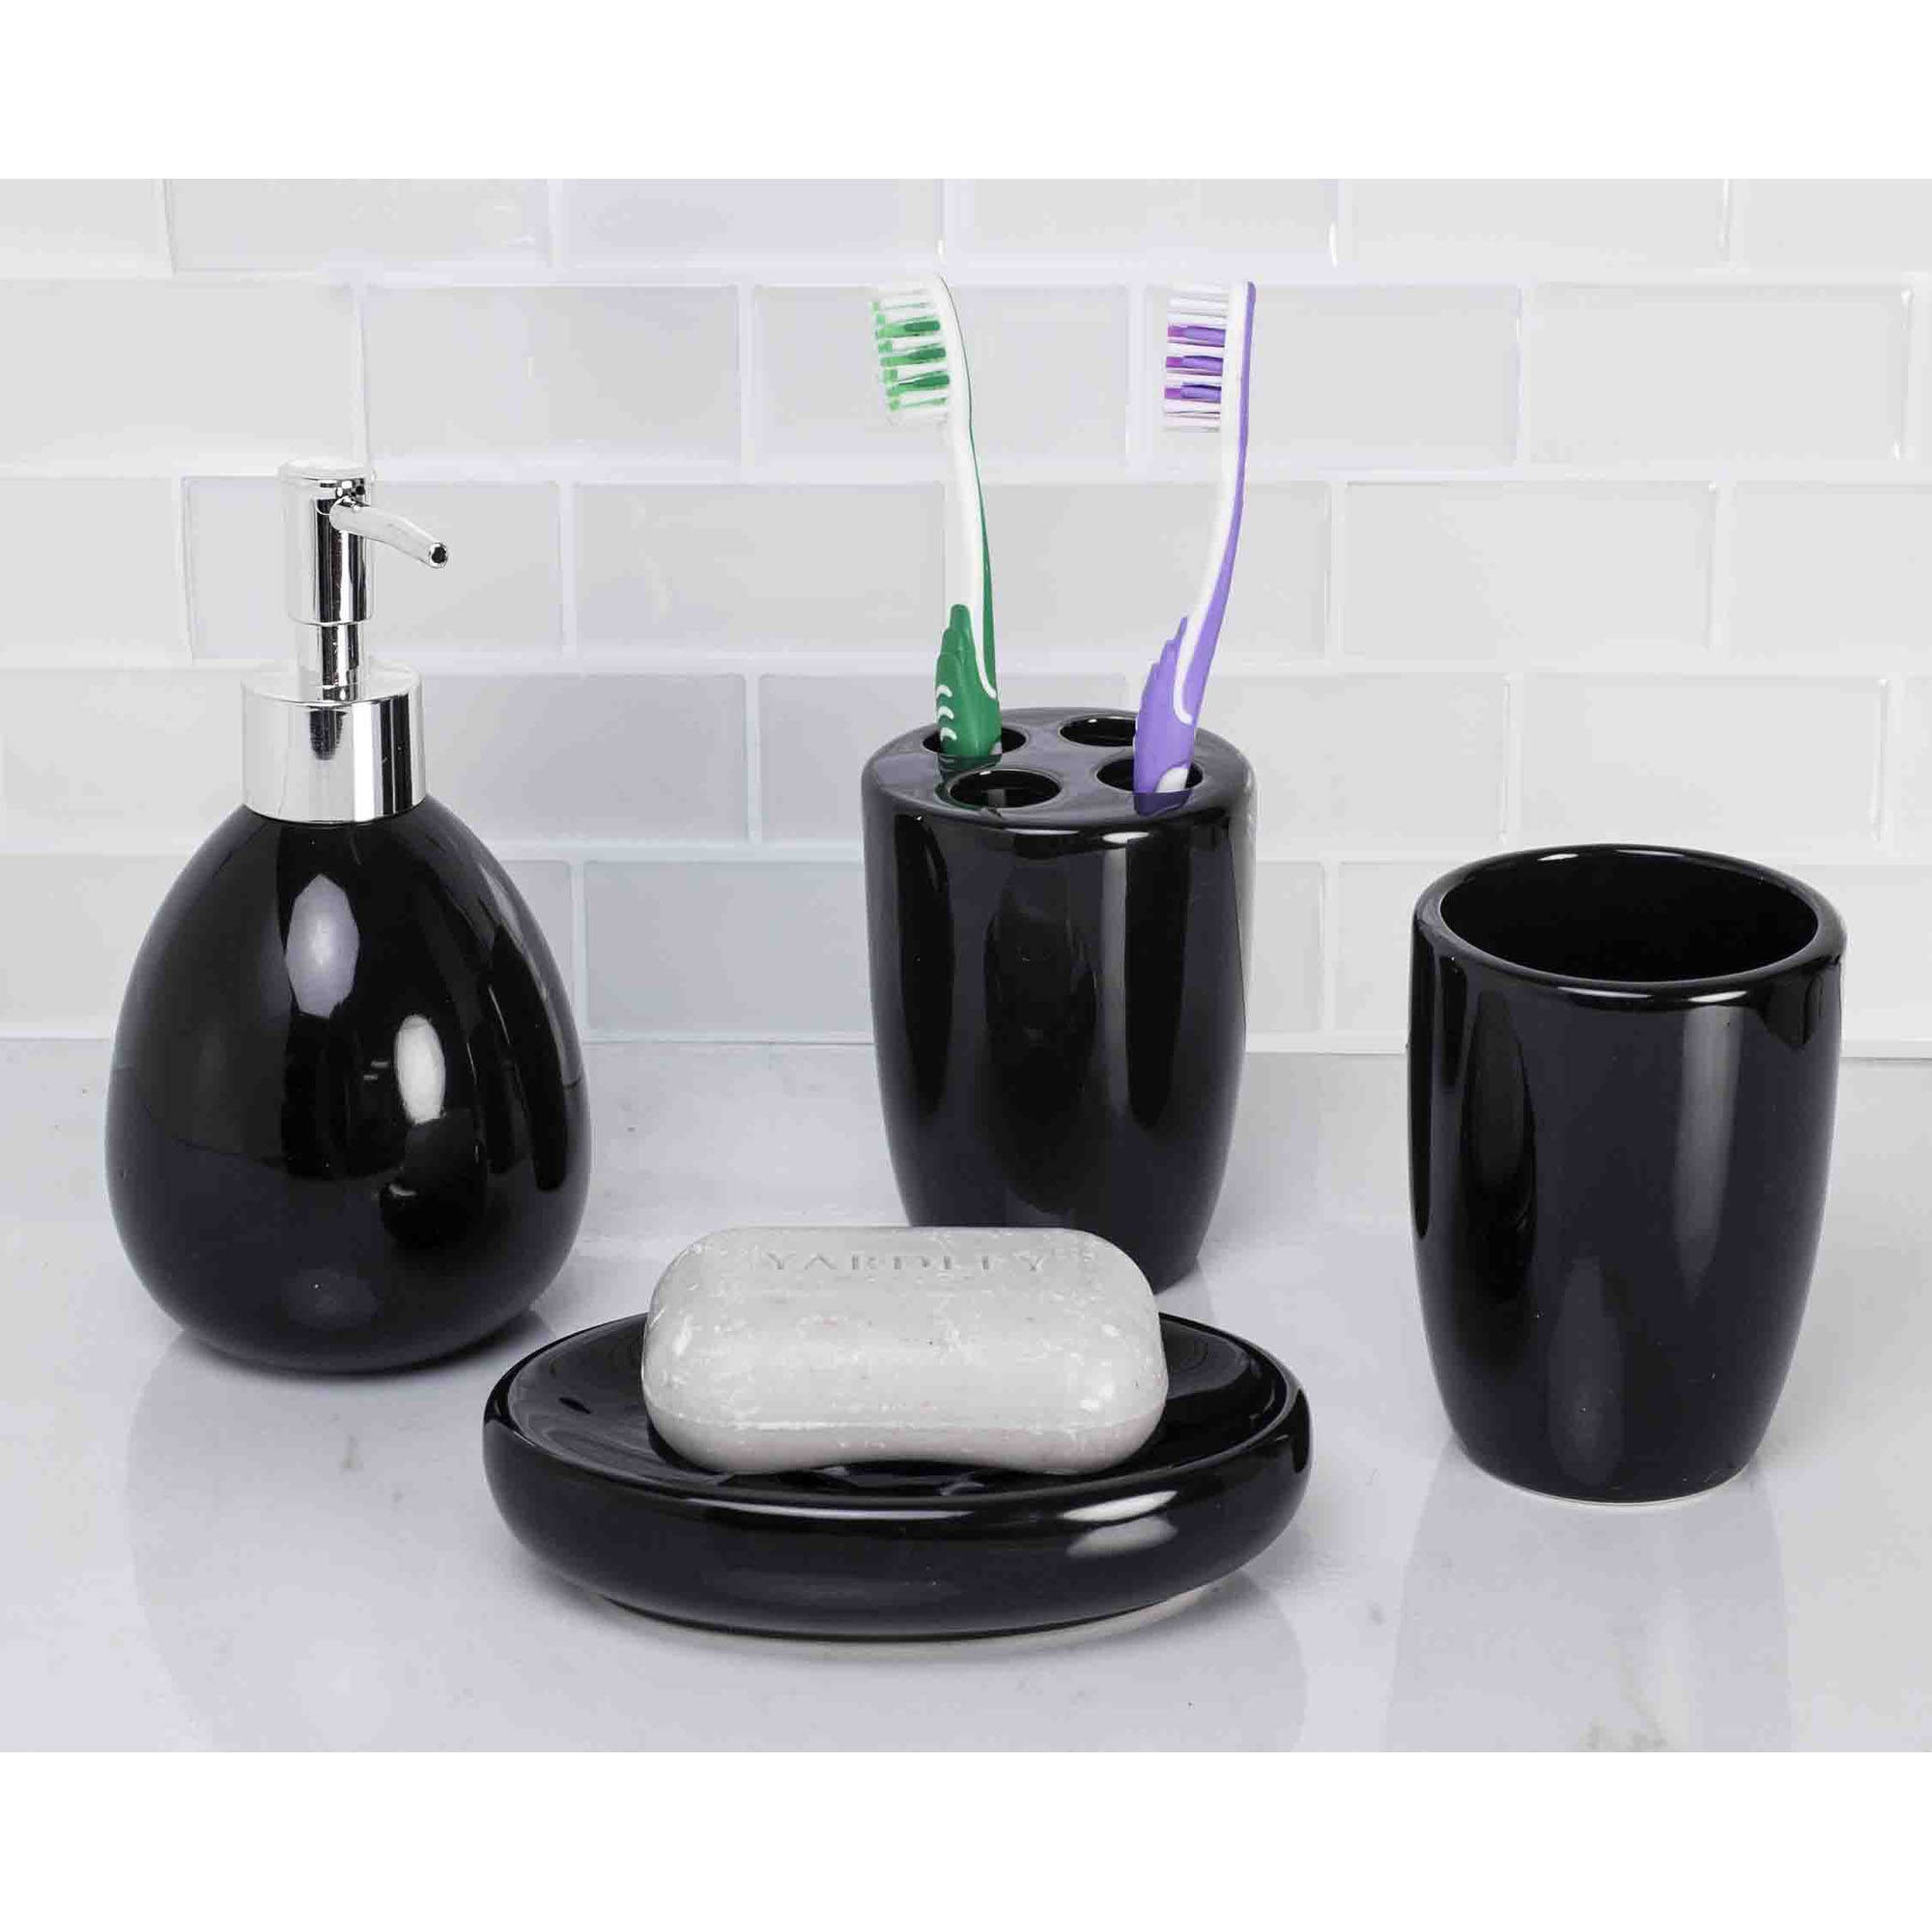 Home Basics 4-Piece Black Bathroom Accessory Set